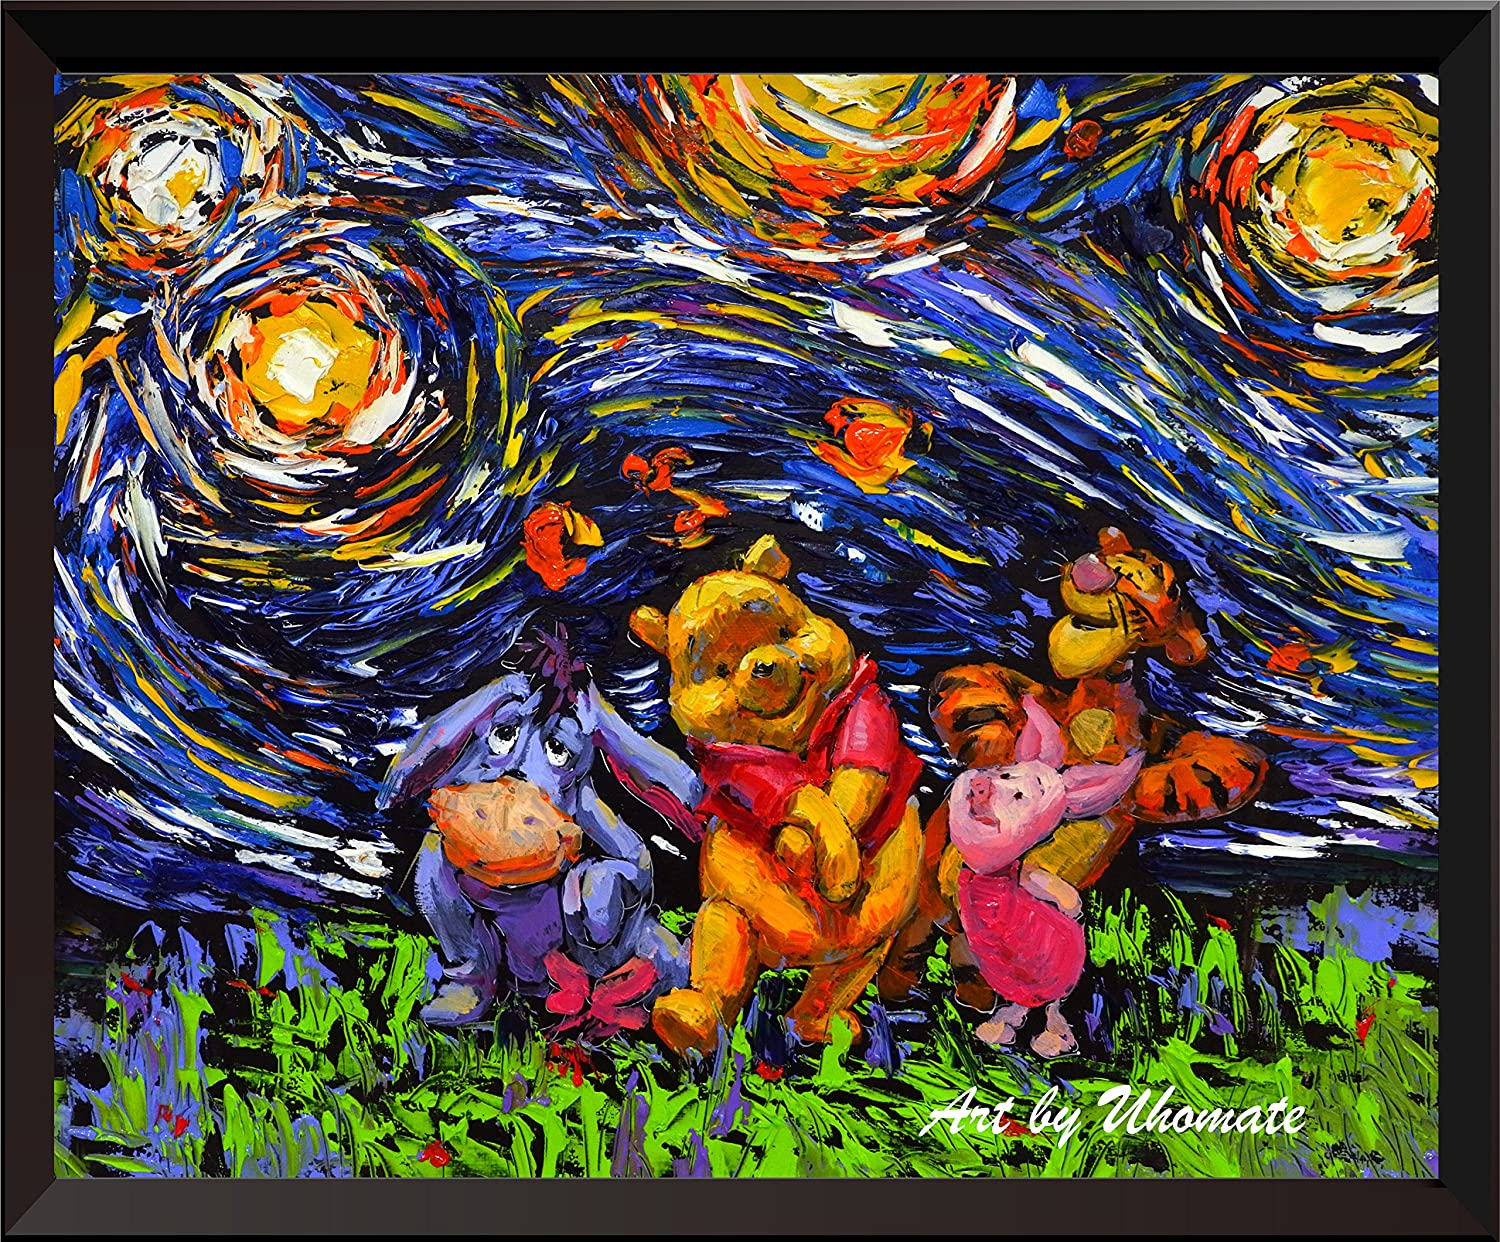 Uhomate Winnie The Pooh Winnie Pooh Inspired Vincent Van Gogh Starry Night Posters Home Canvas Wall Art Nursery Decor Living Room Wall Decor A014 (8X10)